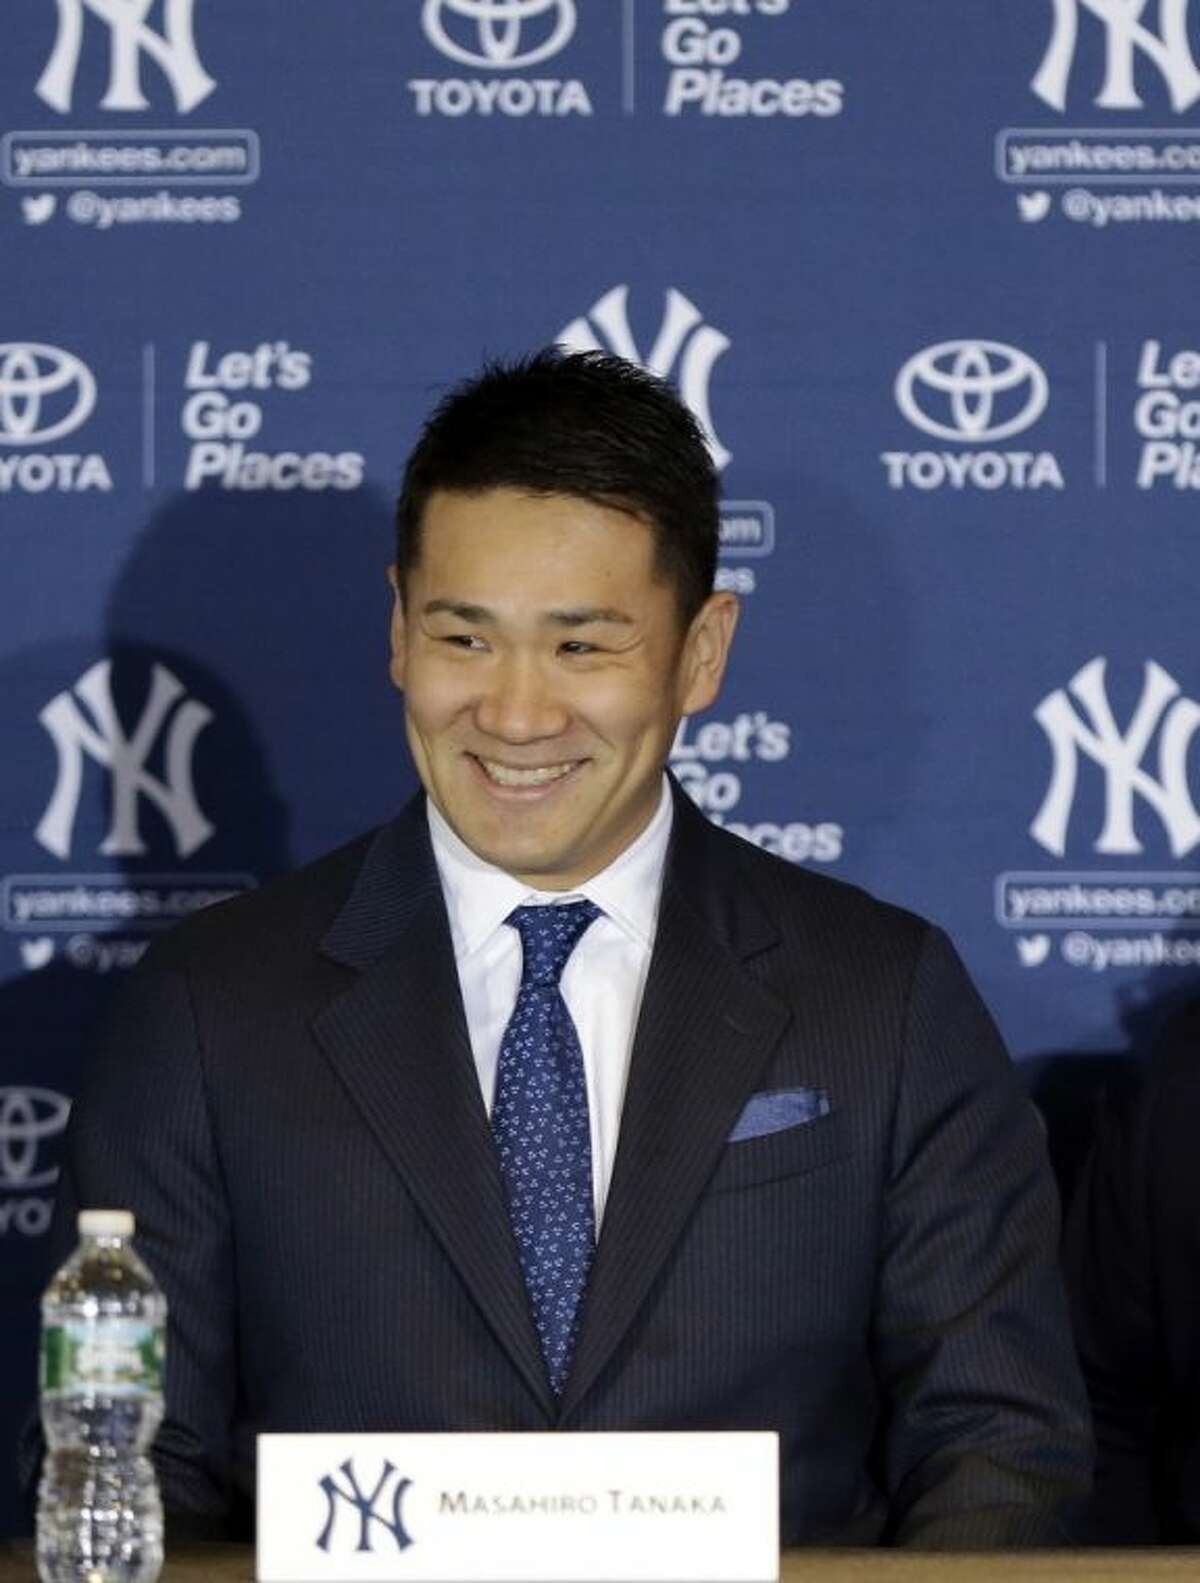 New York Yankees pitcher Masahiro Tanaka, of Japan, smiles as he arrives for a basesball news conference at Yankee Stadium Tuesday, Feb. 11, 2014, in New York. (AP Photo/Frank Franklin II)